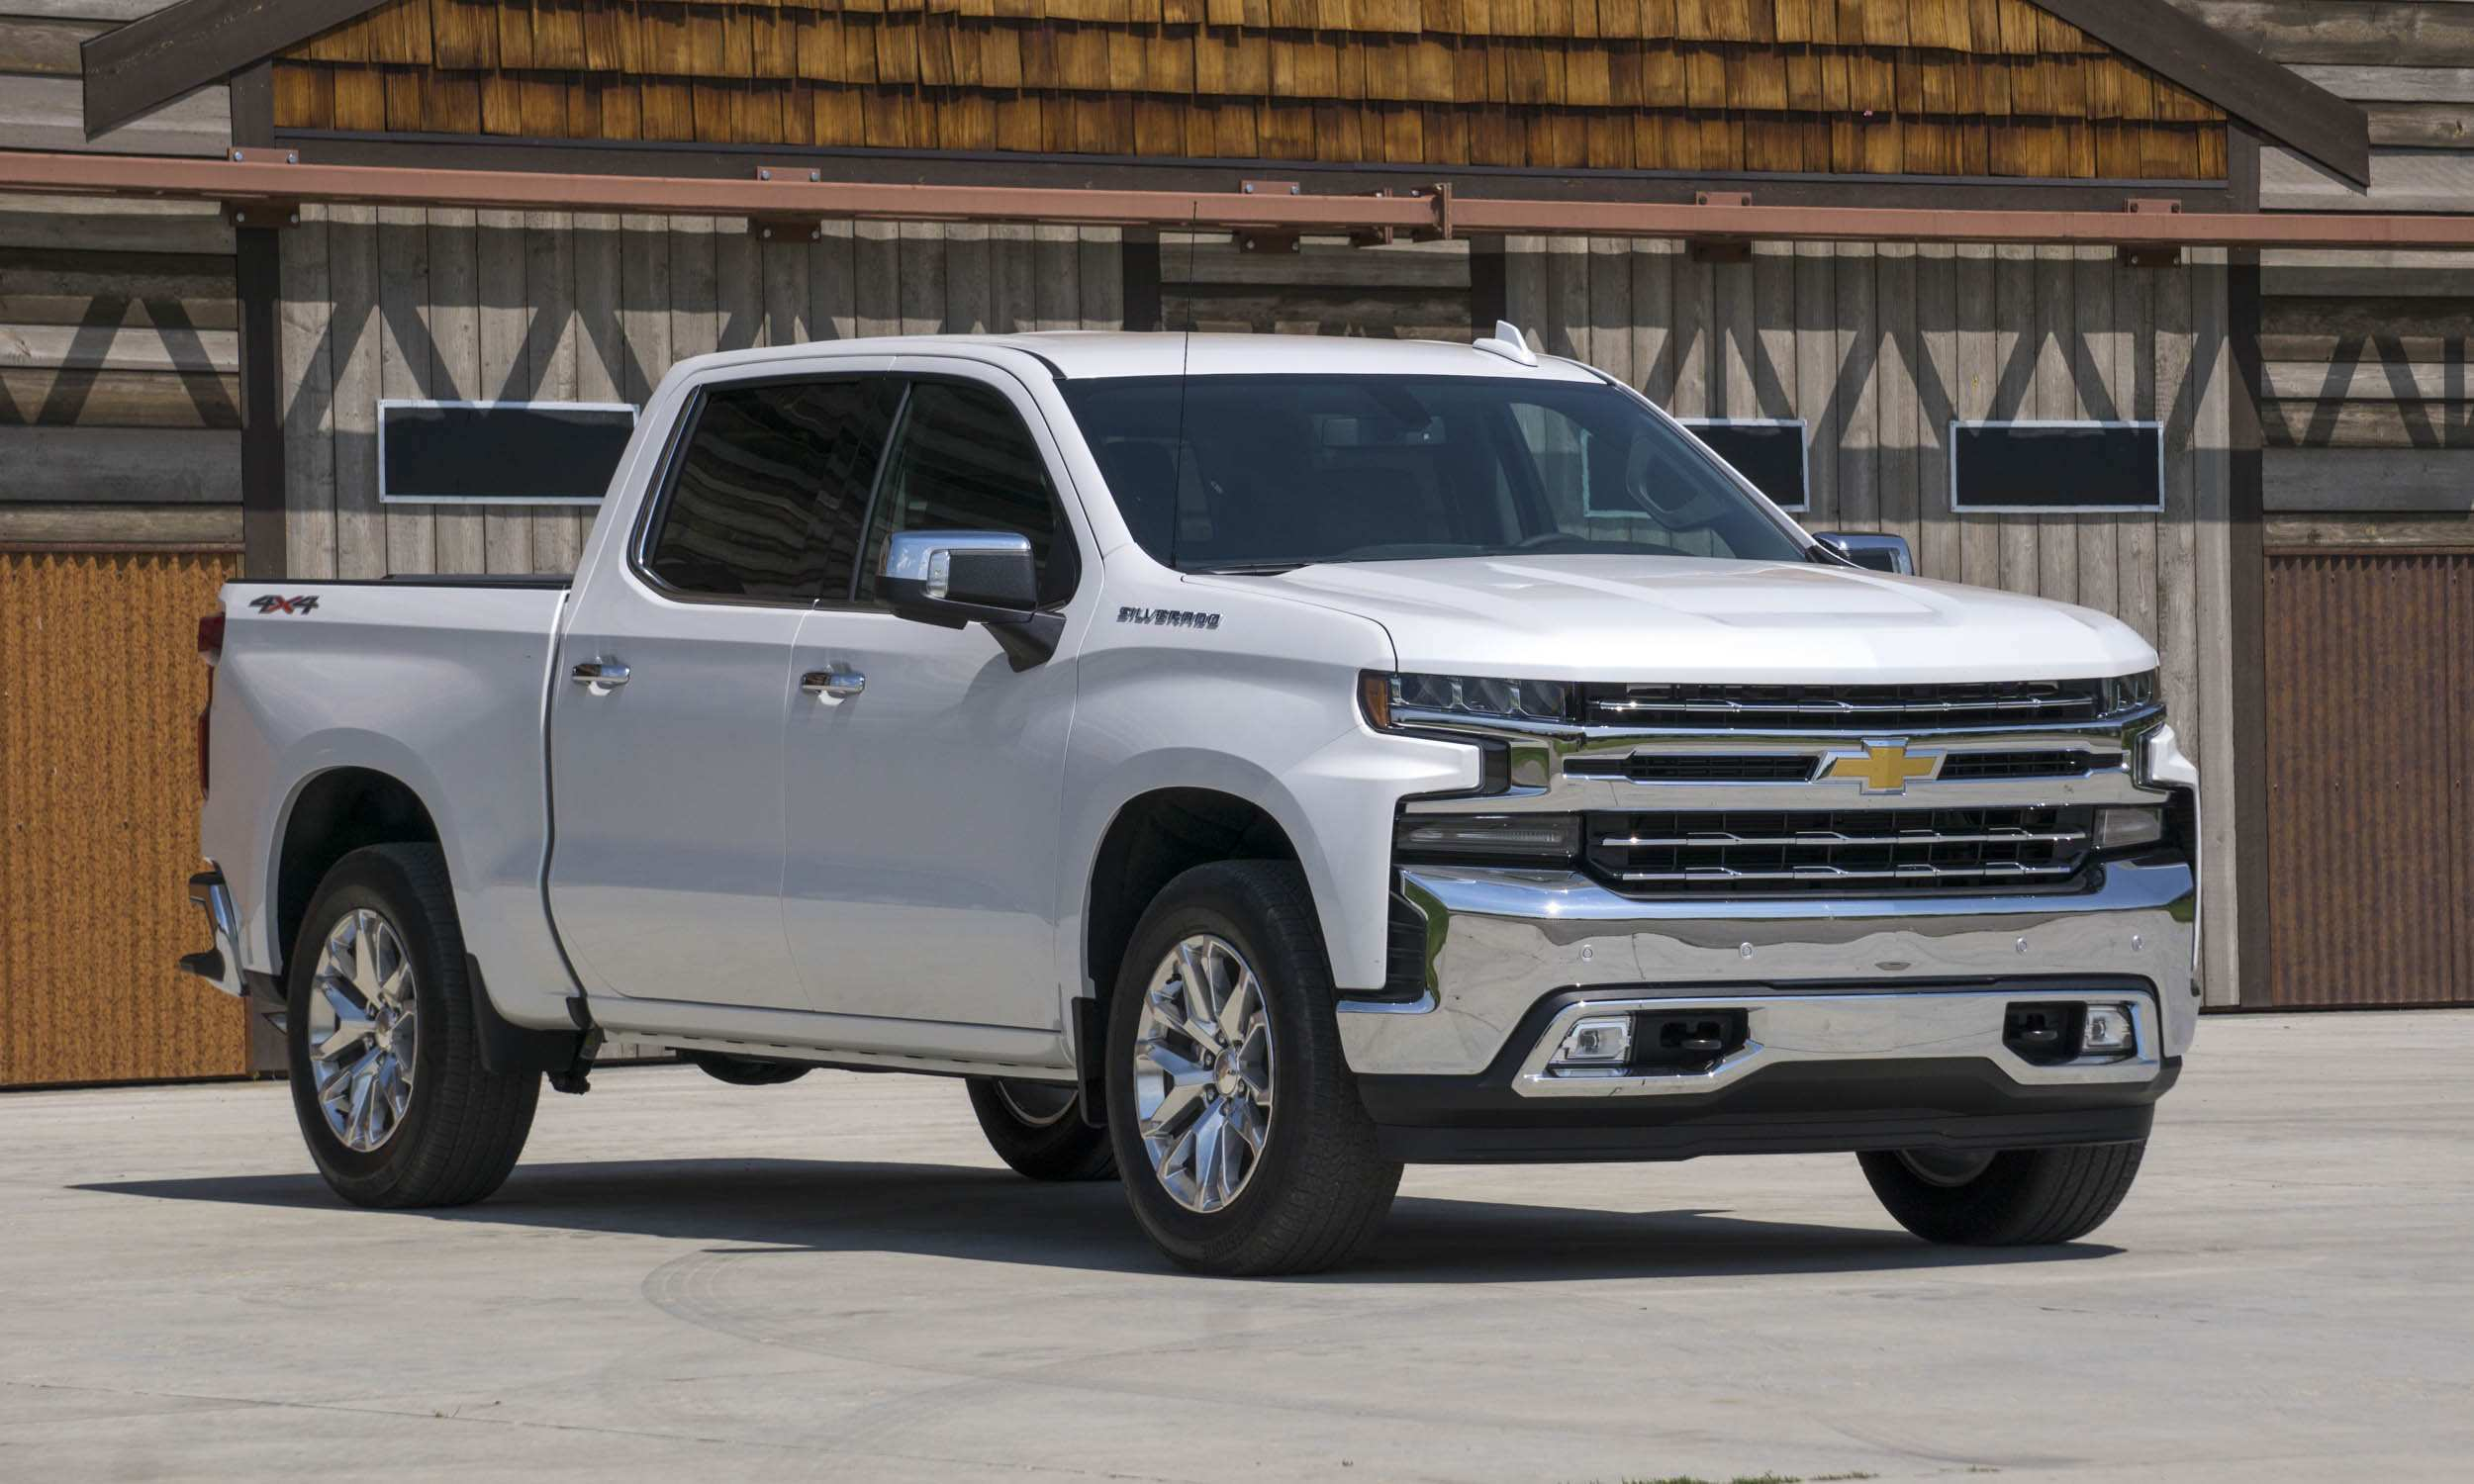 17 Gallery of 2019 Chevrolet Silverado 1500 Review Photos for 2019 Chevrolet Silverado 1500 Review